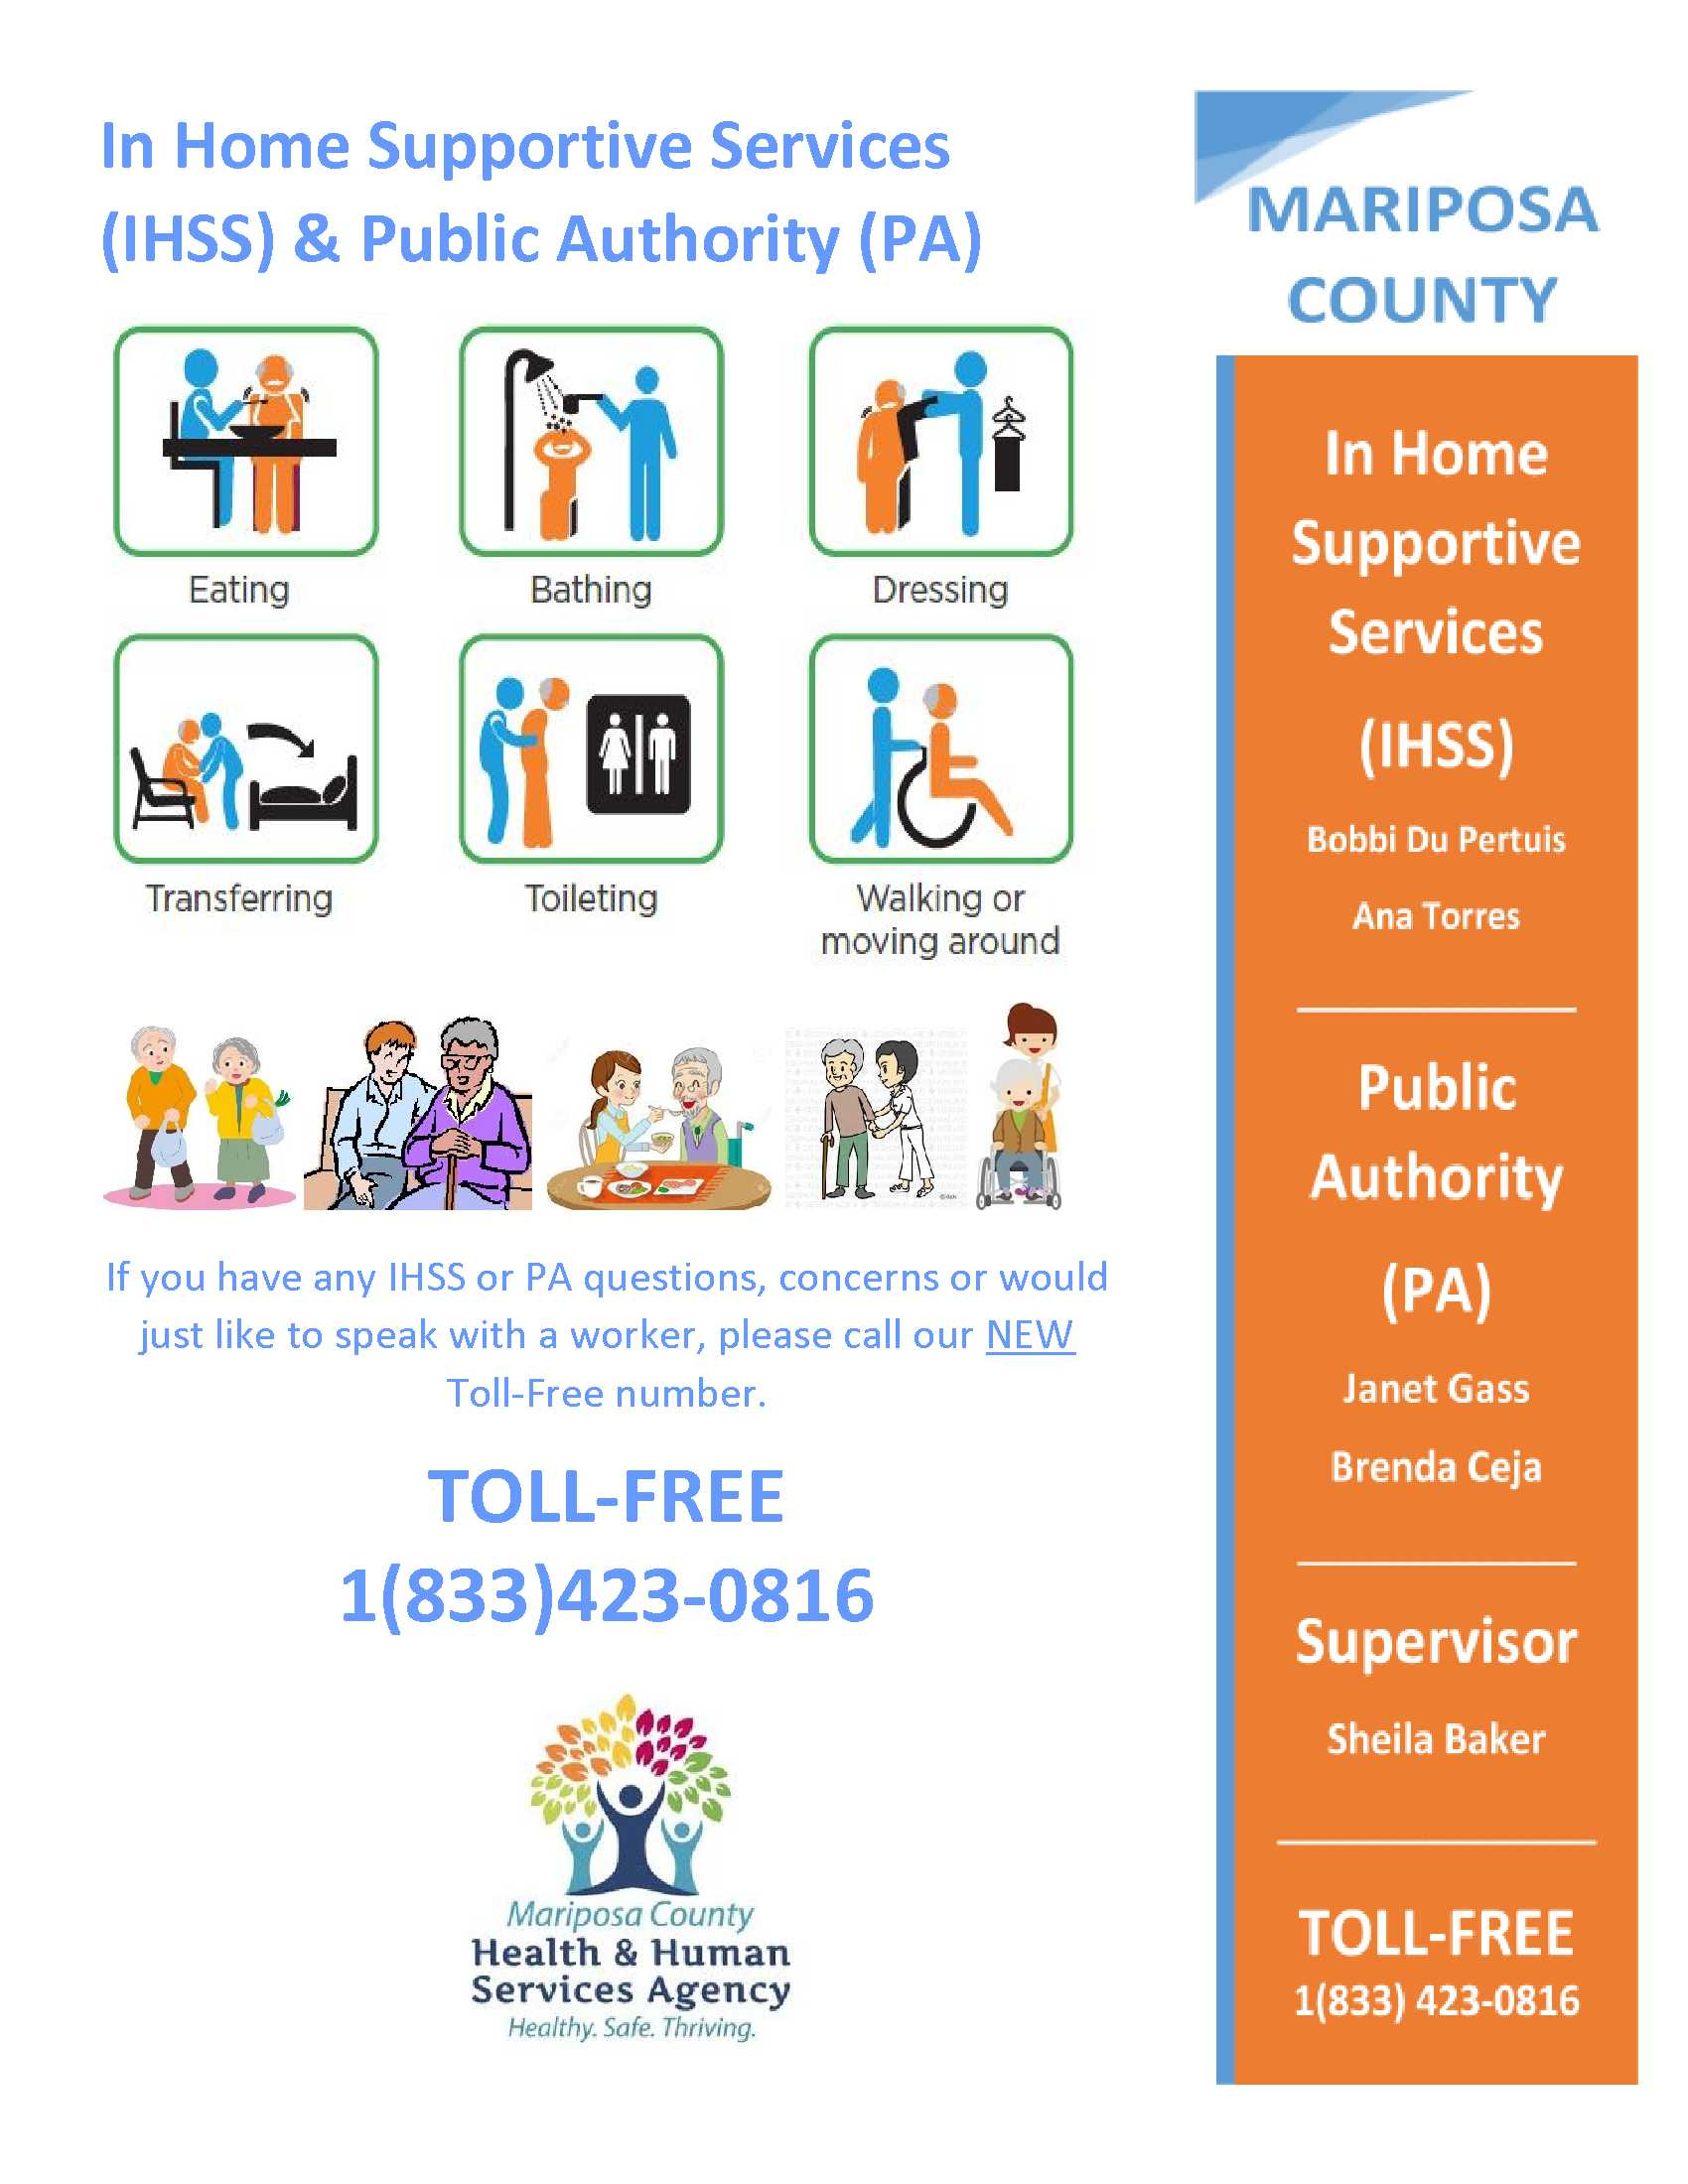 In Home Supportive Services Flyer 5.1.19